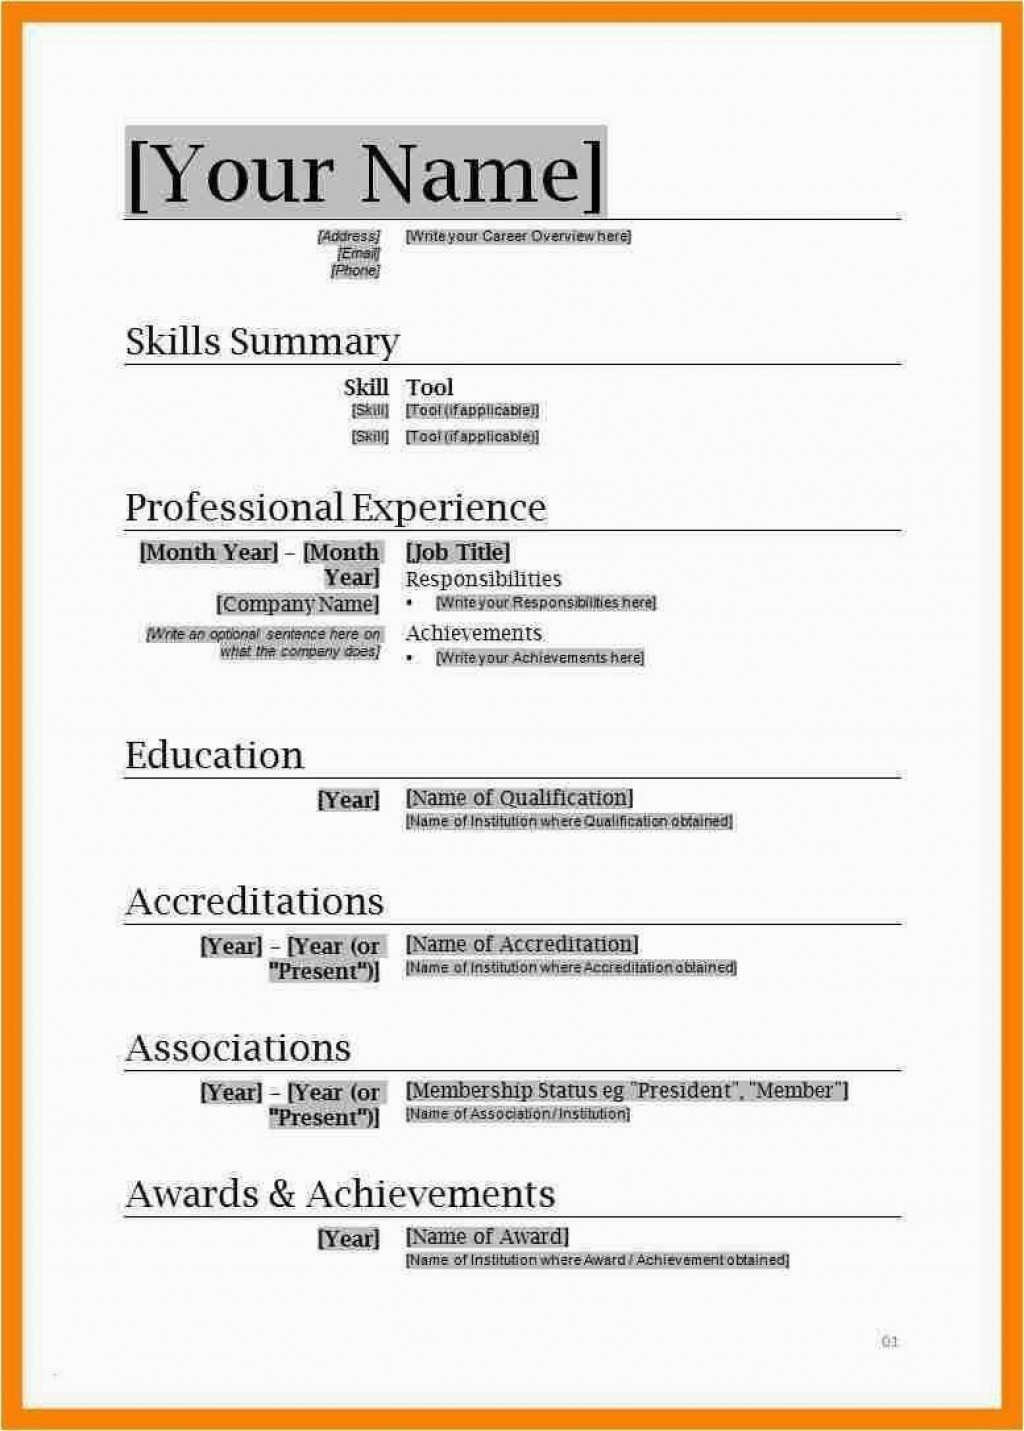 002 Beautiful Simple Resume Template Download In M Word Image Large